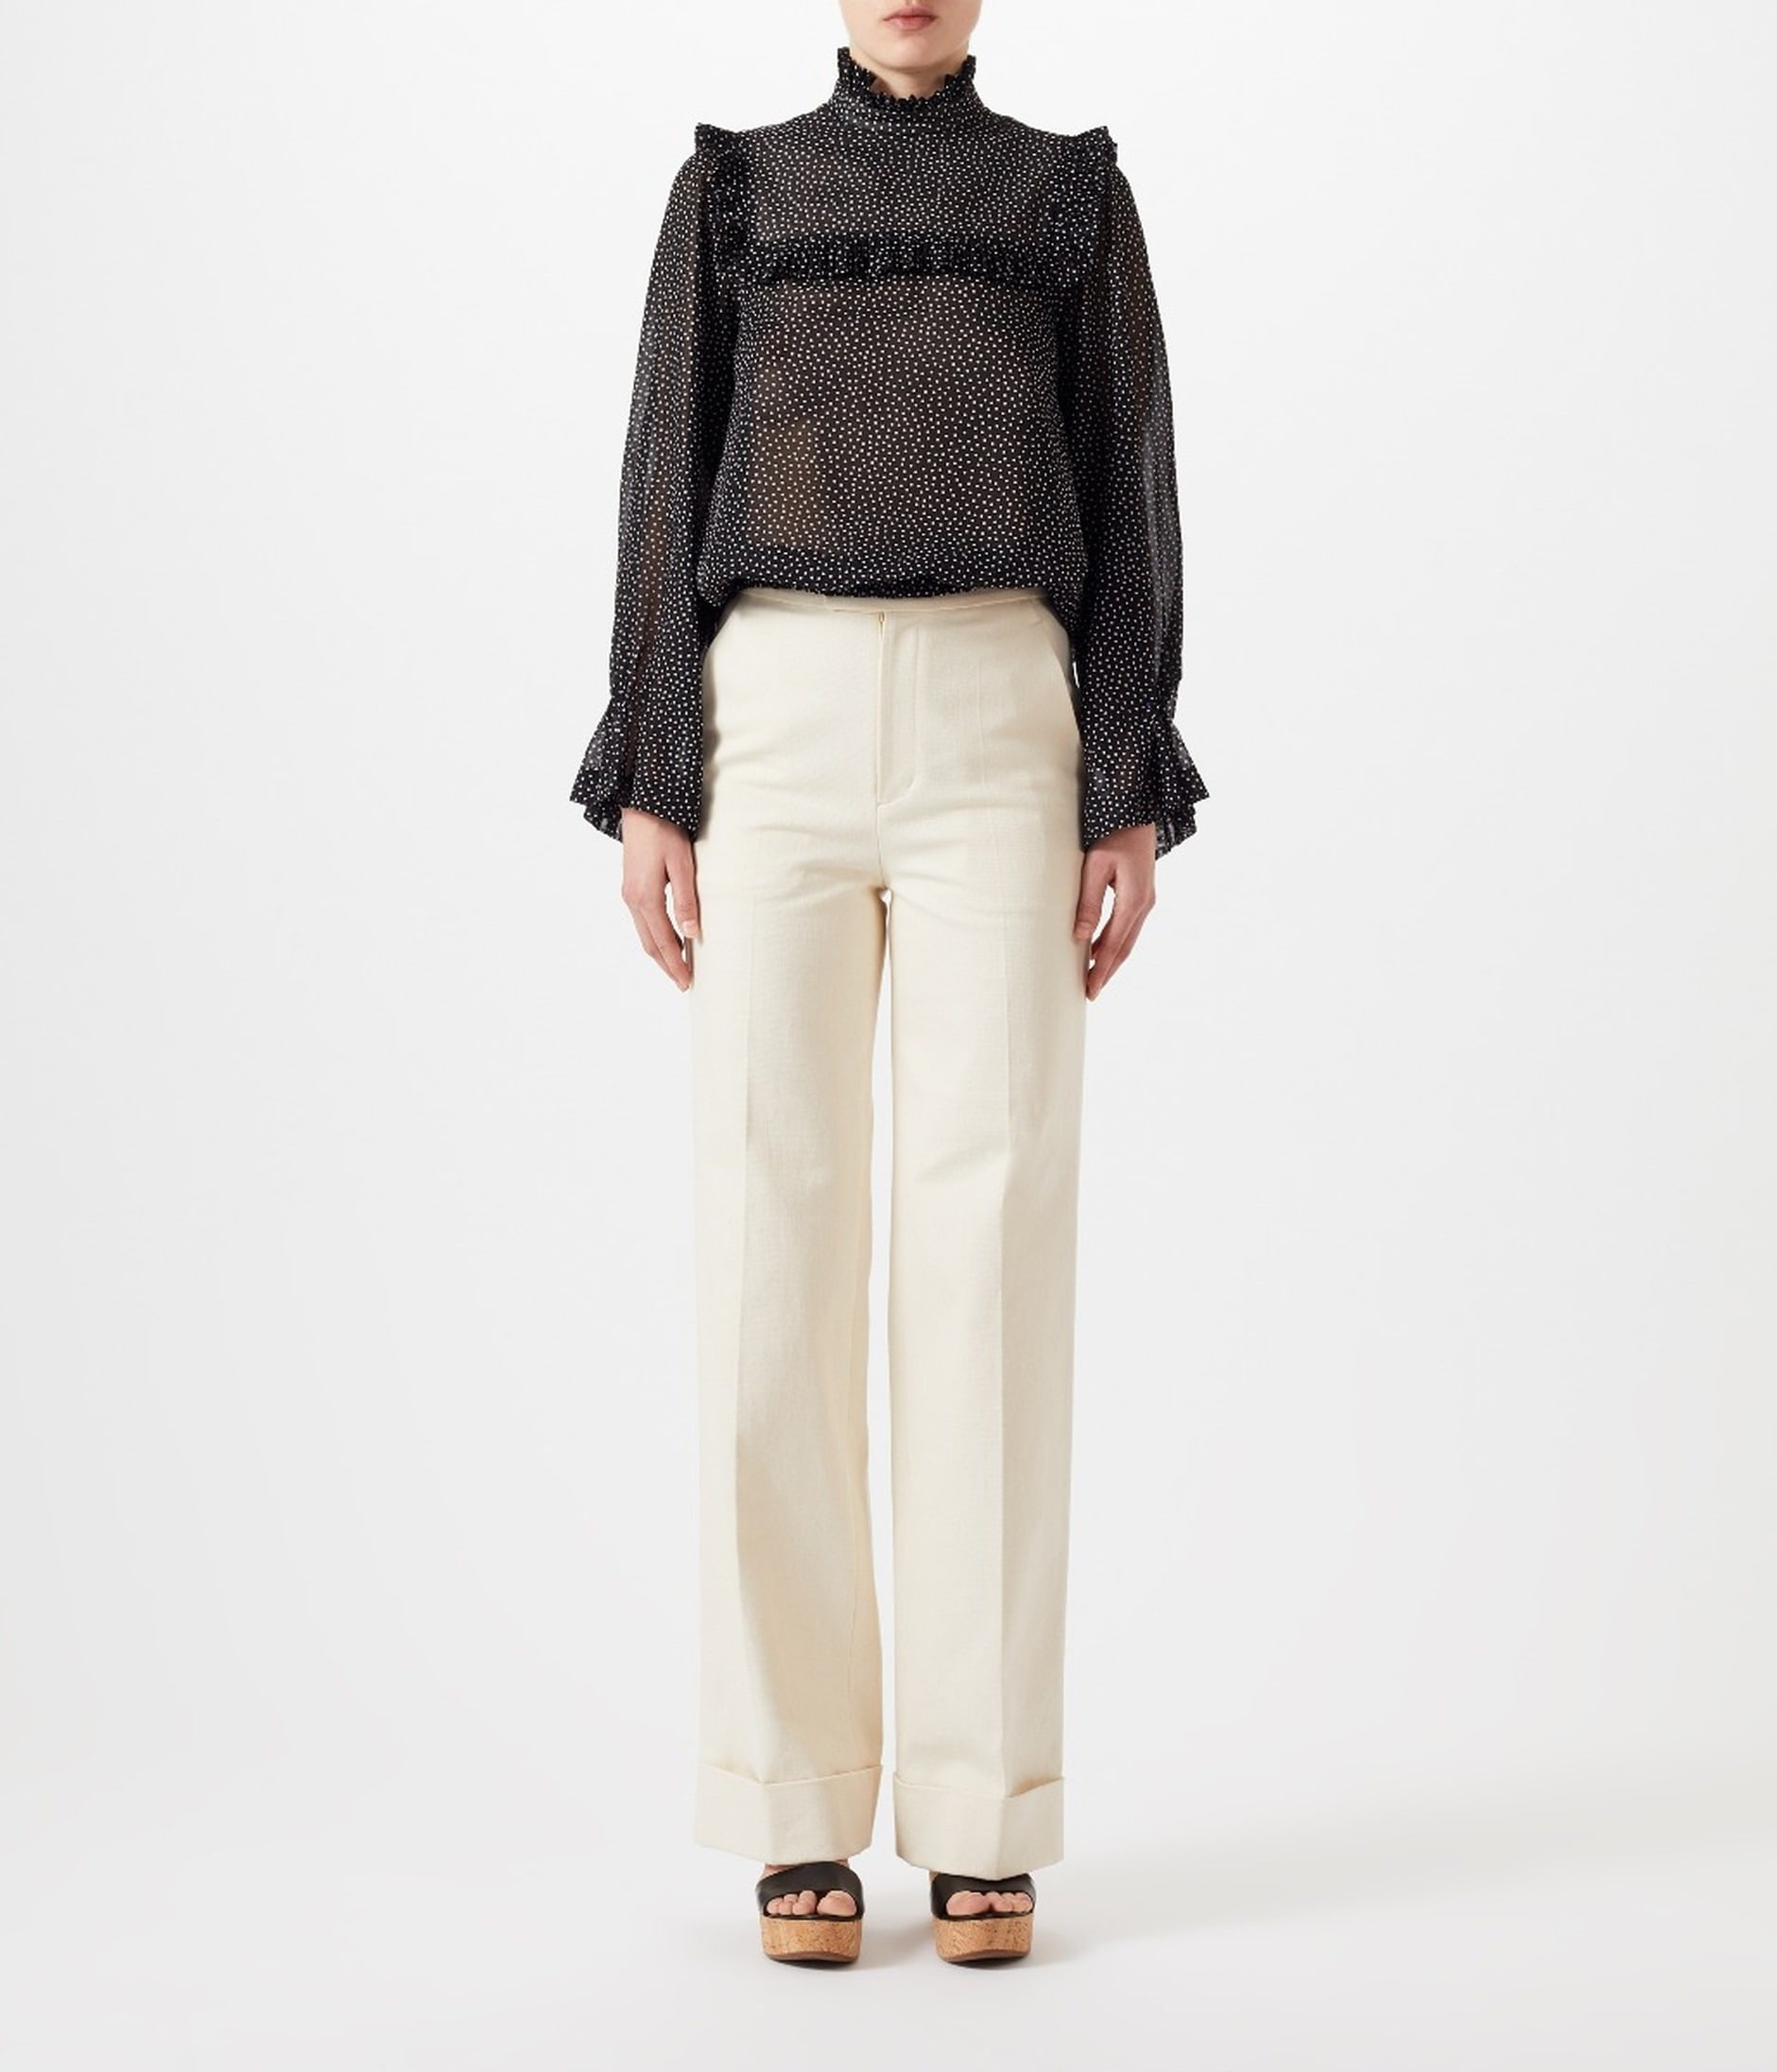 CATALINA TROUSERS 詳細画像 OFF WHITE 2